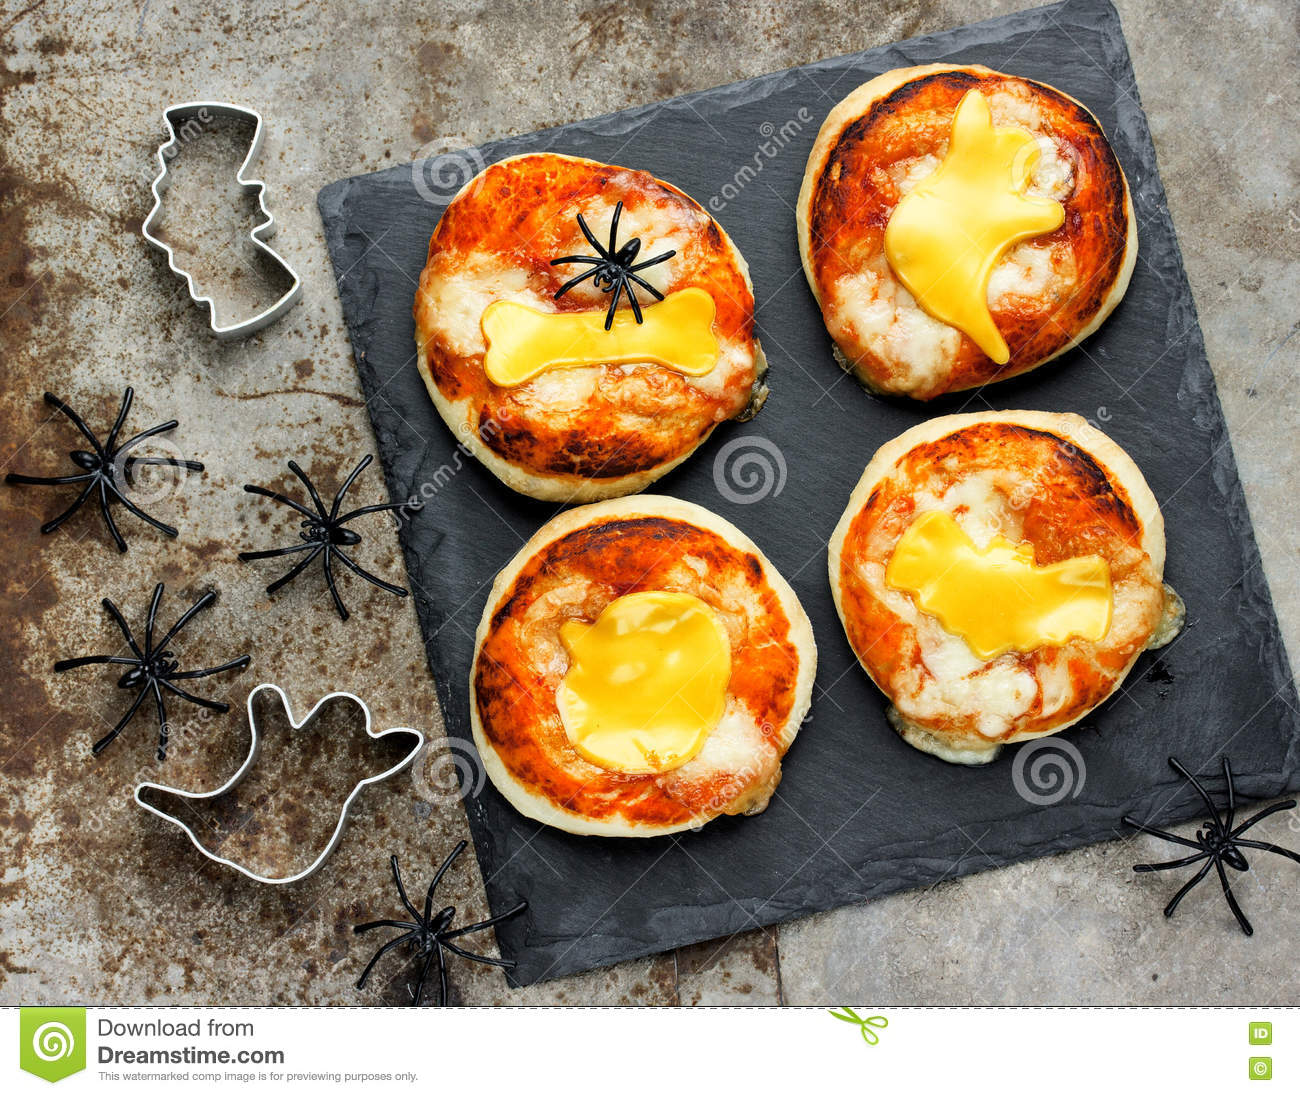 halloween food ideas for kids party - pizza with tomato and chee